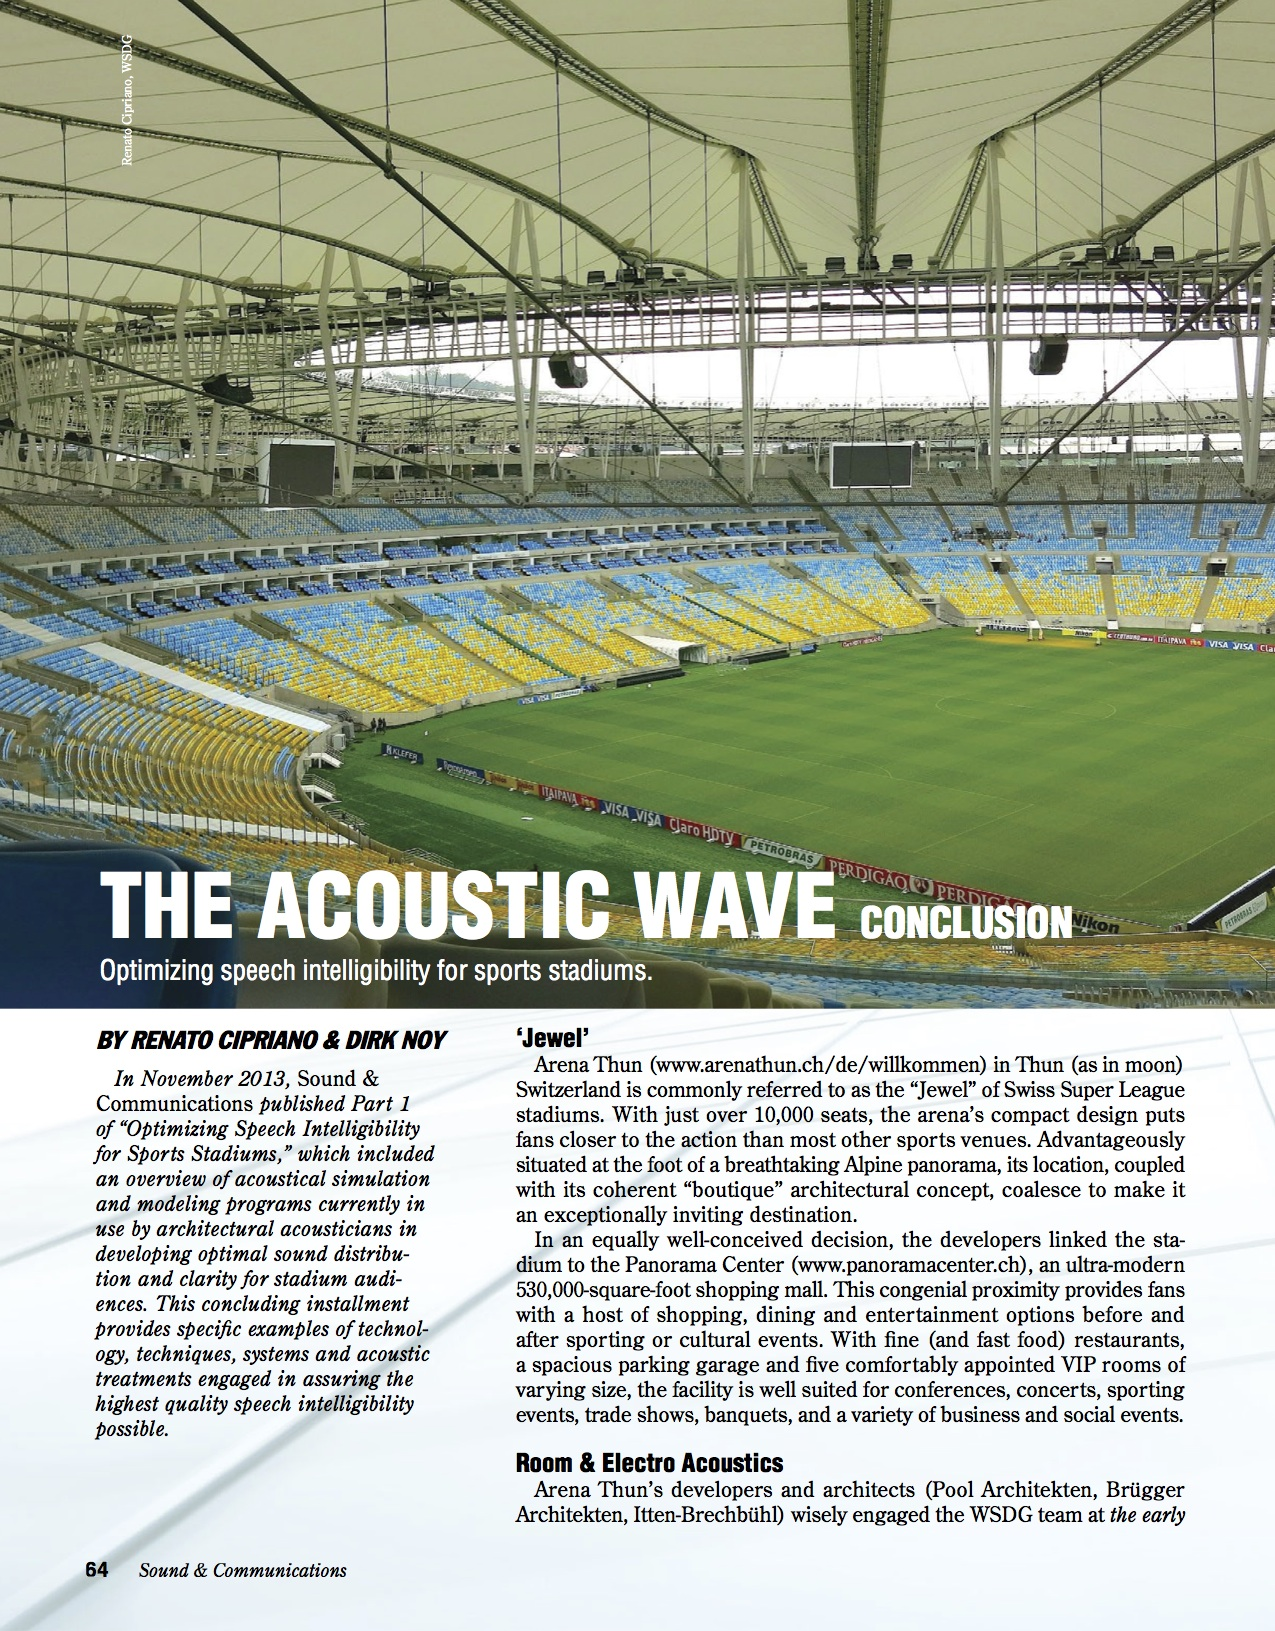 p1 the acoustic wave pt. 2 conclusion copy 2